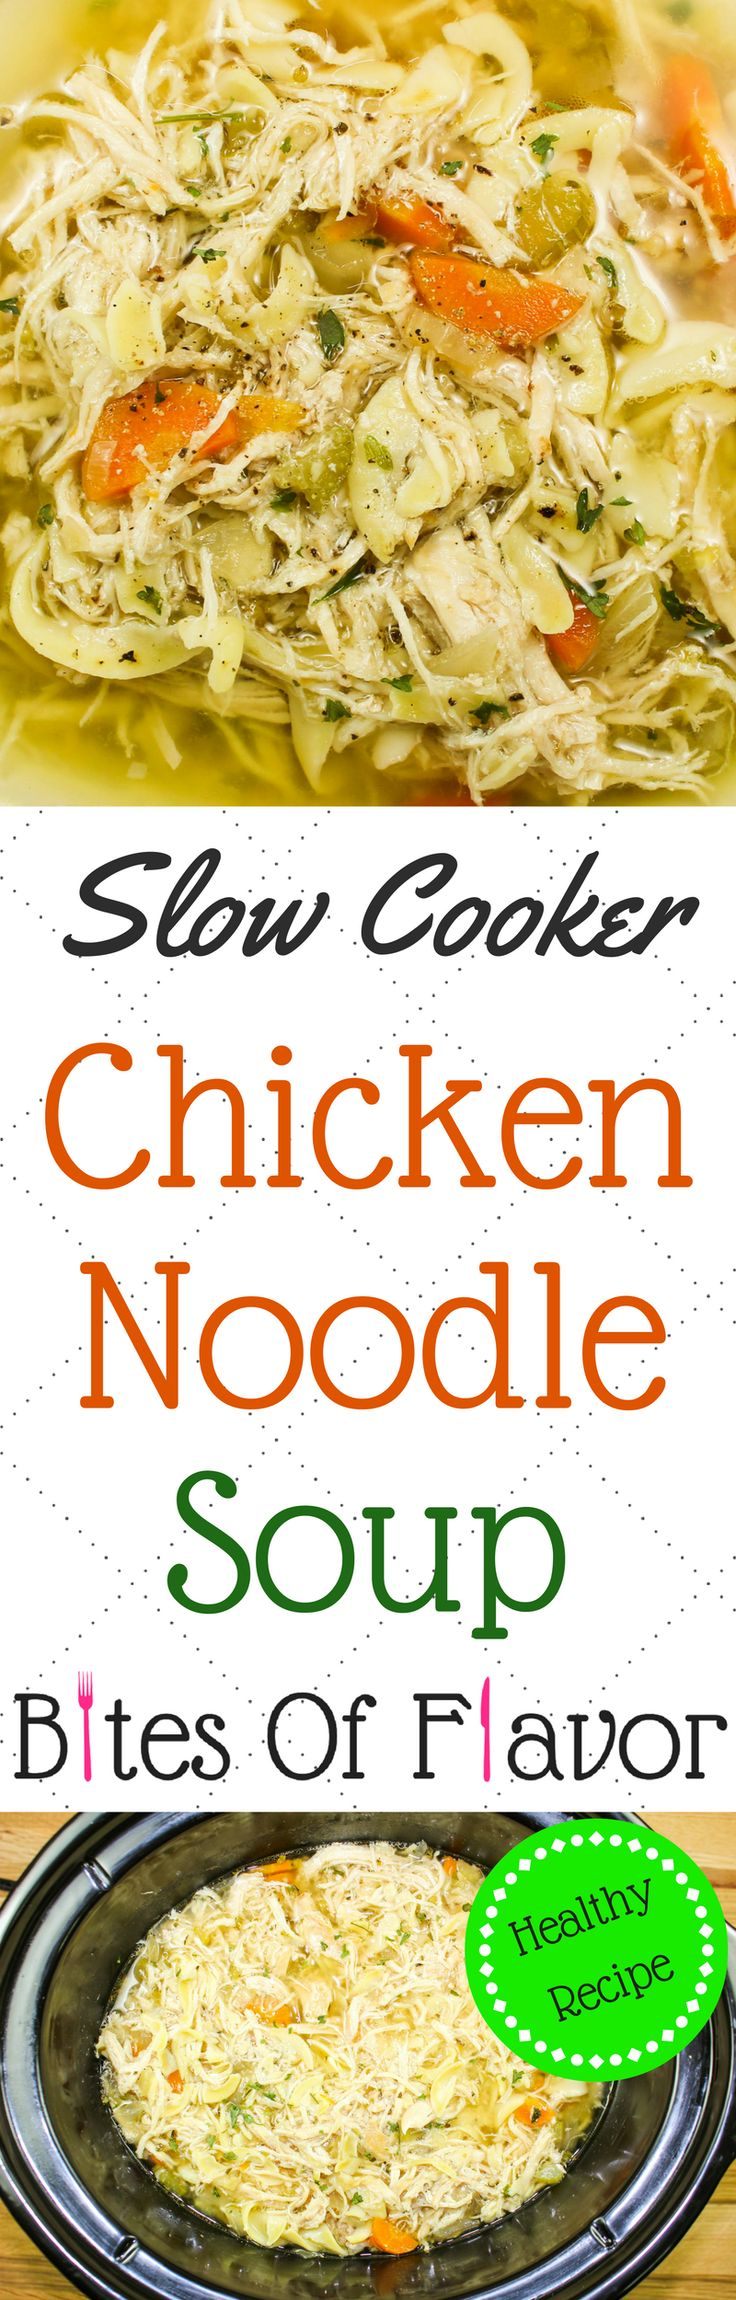 Slow Cooker Chicken Noodle Soup-True comfort in a bowl! Perfect for cold days & when you're under the weather. Hearty vegetables, shredded chicken, and delicious broth are the perfect combination. Easy to make & healthy! Weight Watcher friendly (3 SmartPoints).